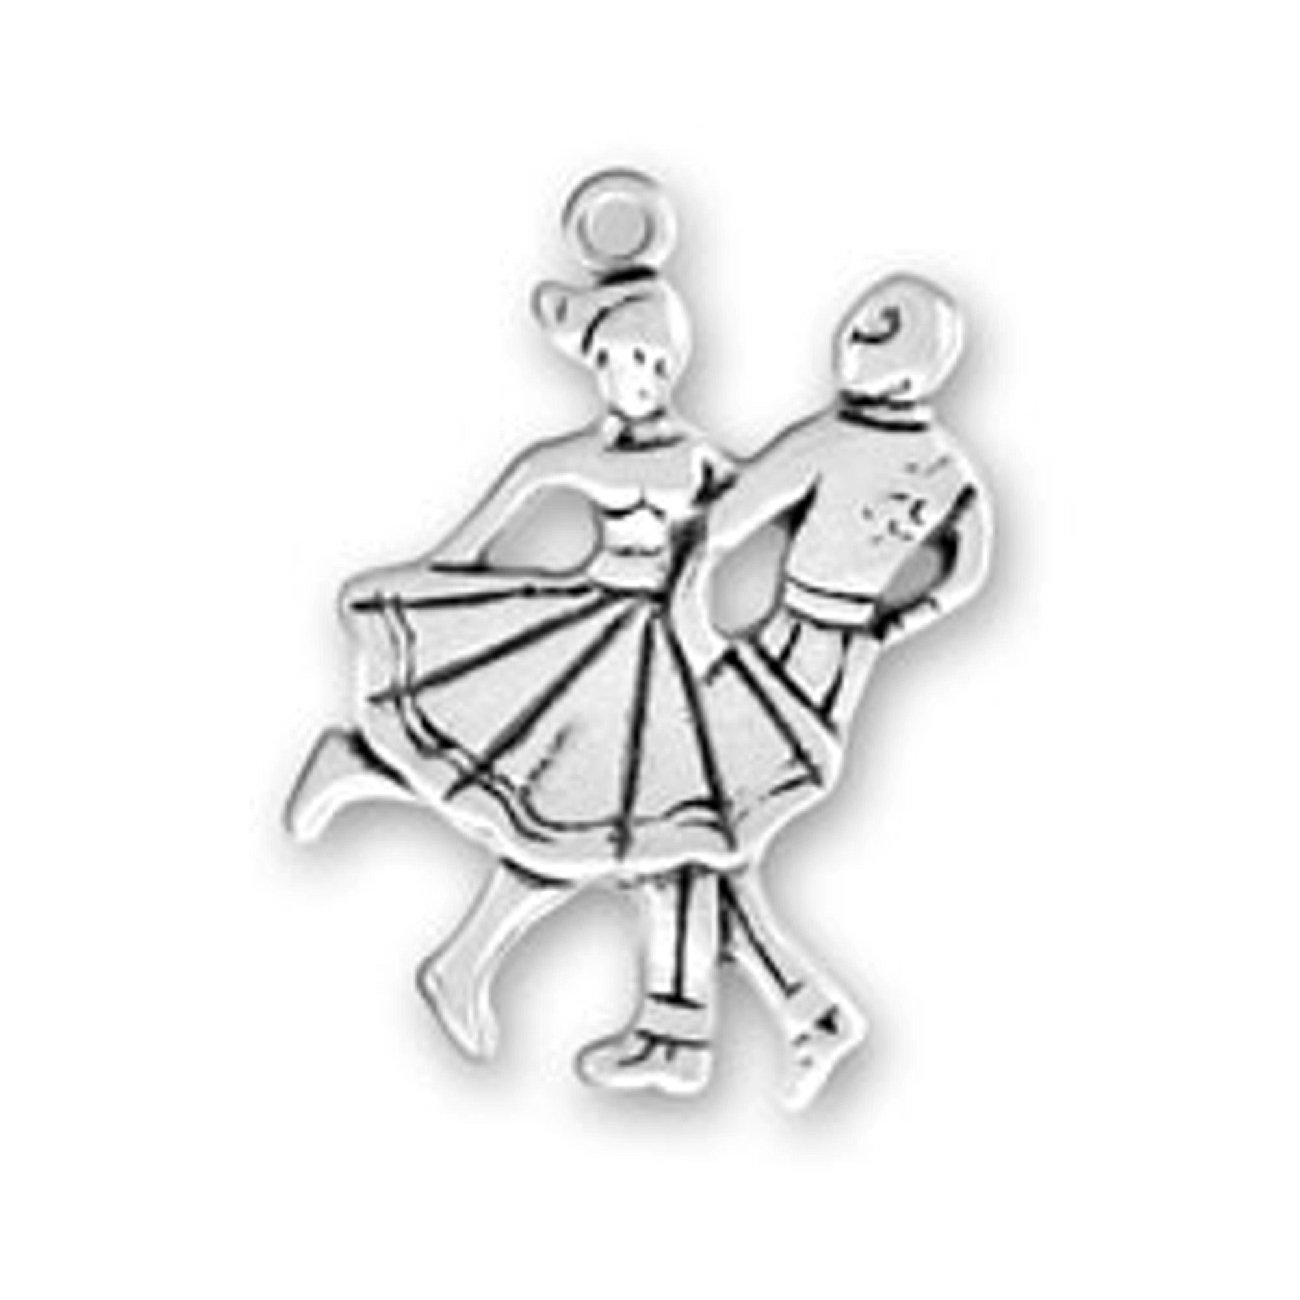 Sterling Silver Womens 1mm Box Chain Square Dancing Or 50s Sock Hop Couple Dancing Pendant Necklace